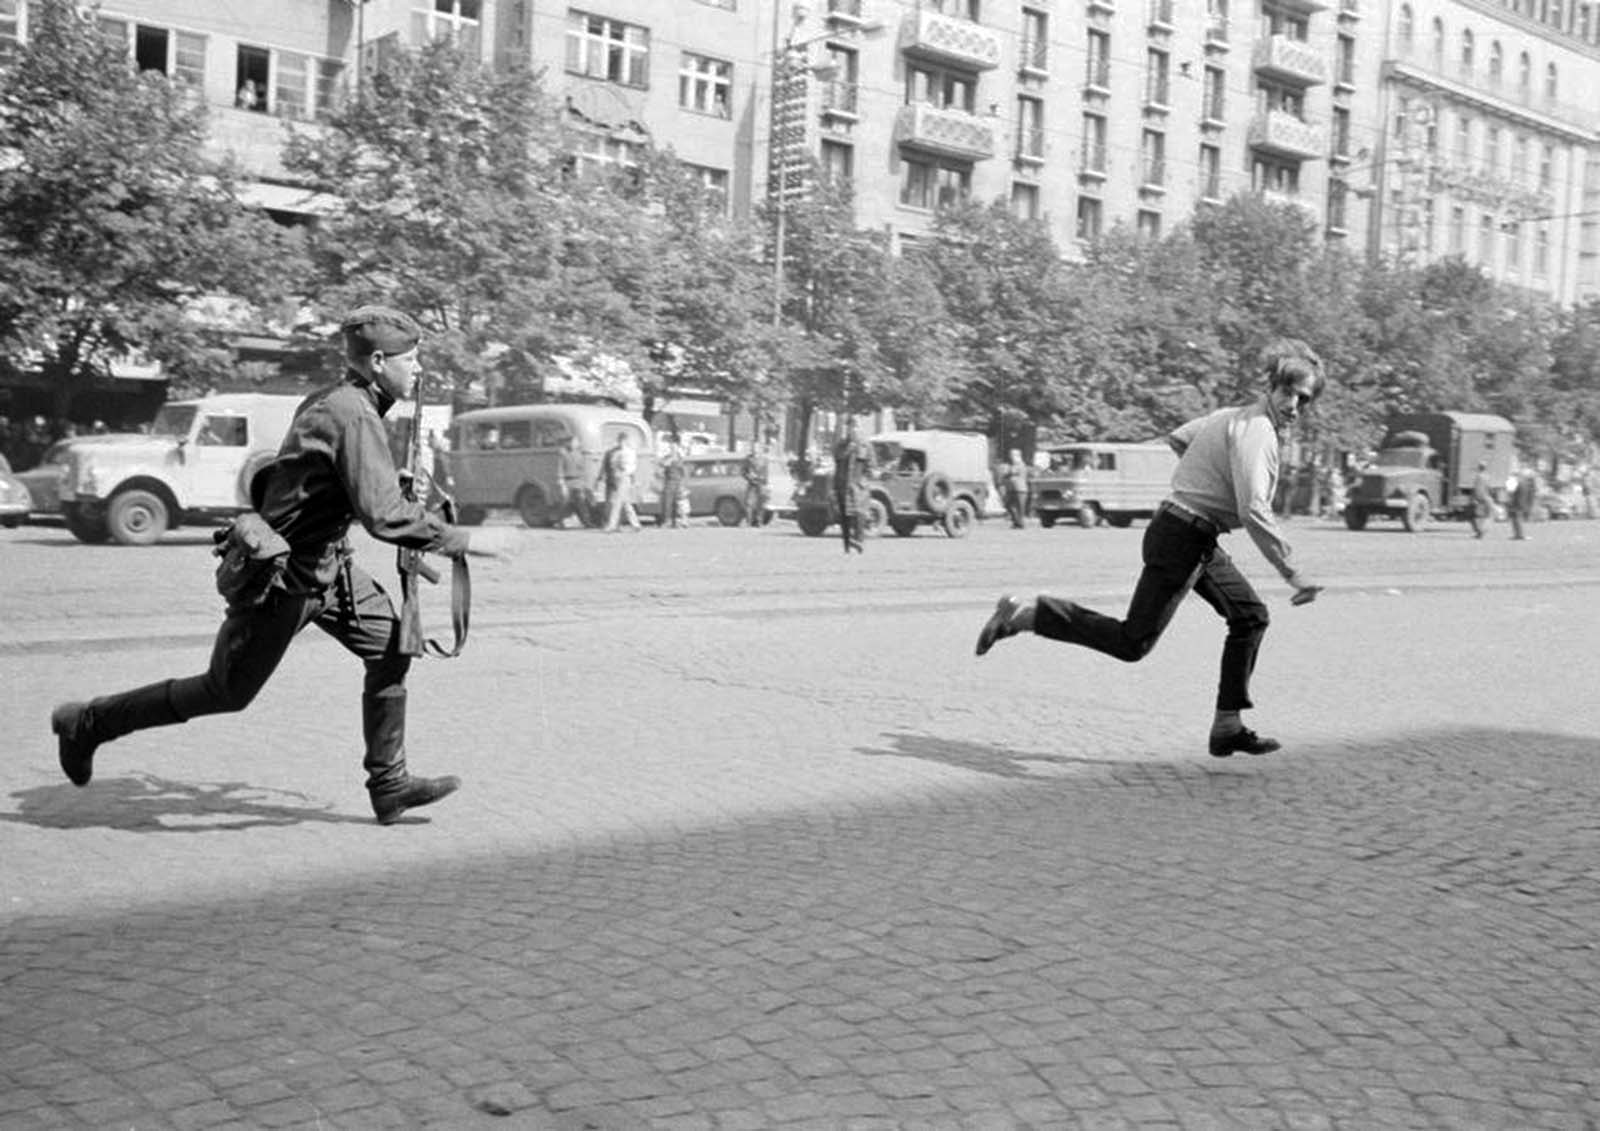 Soviet soldier chasing young man who had thrown stones at a tank, 1968.